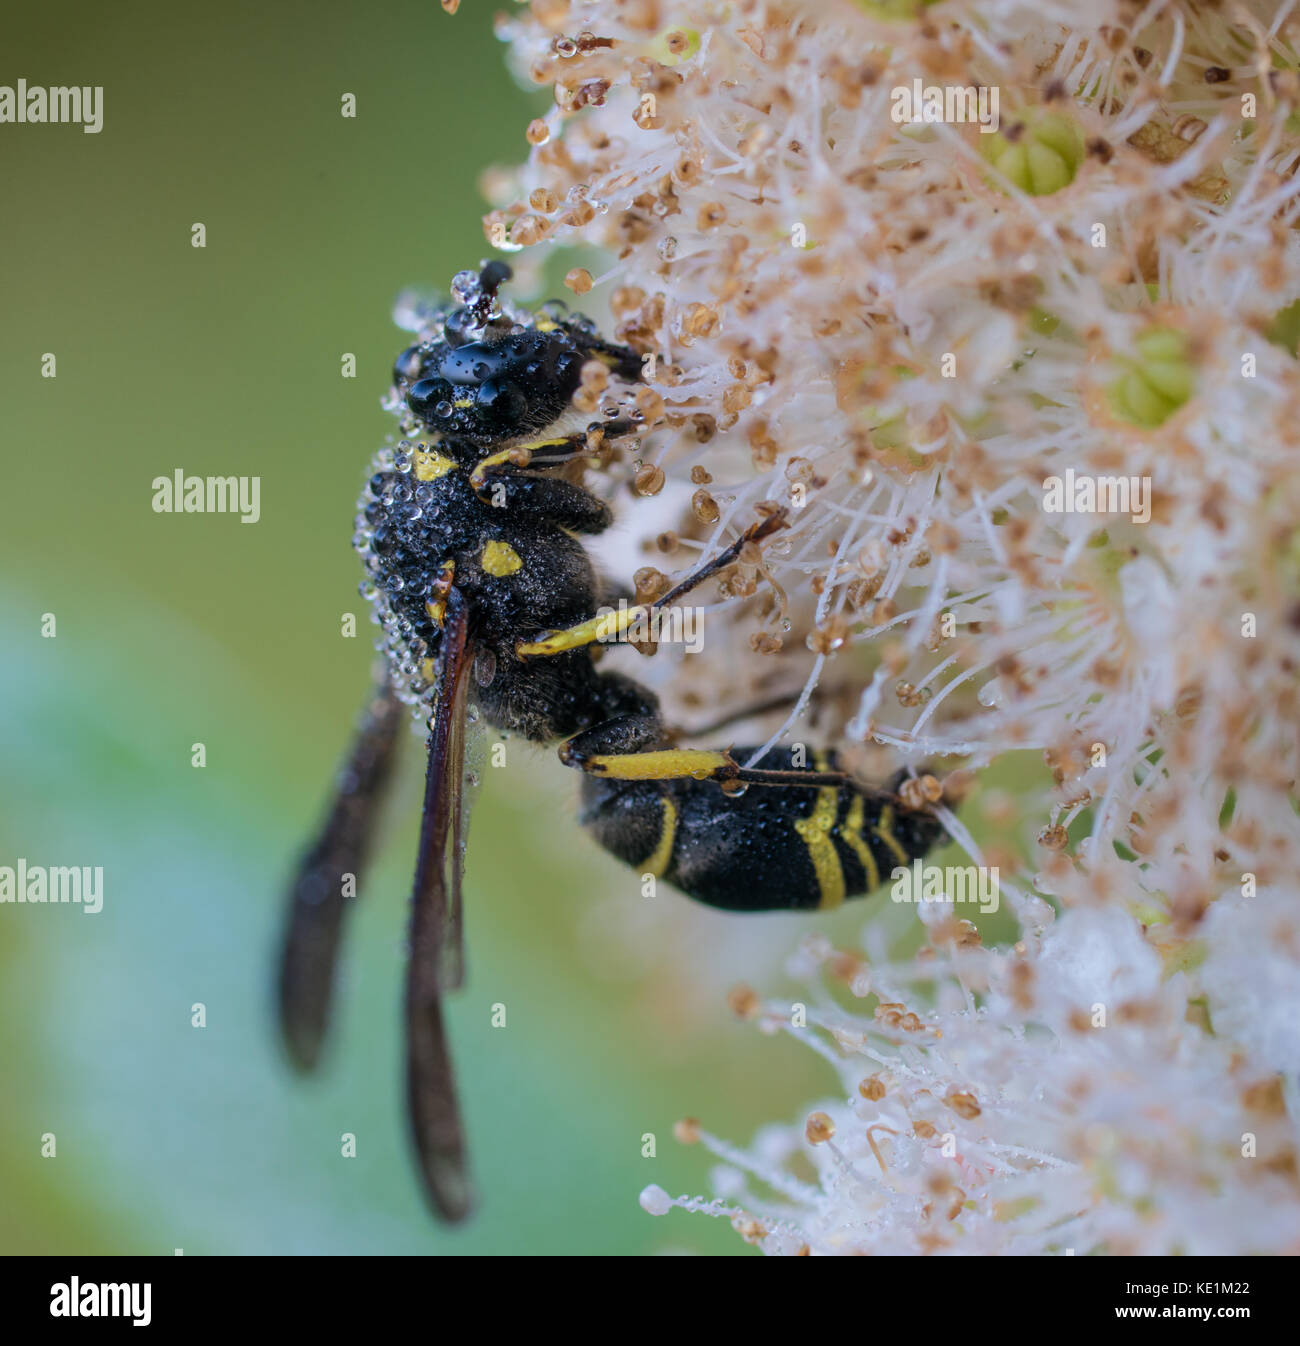 Potter Wasp, Eumenes fraternus on dew covered flower North Eastern Ontario, Canada Stock Photo